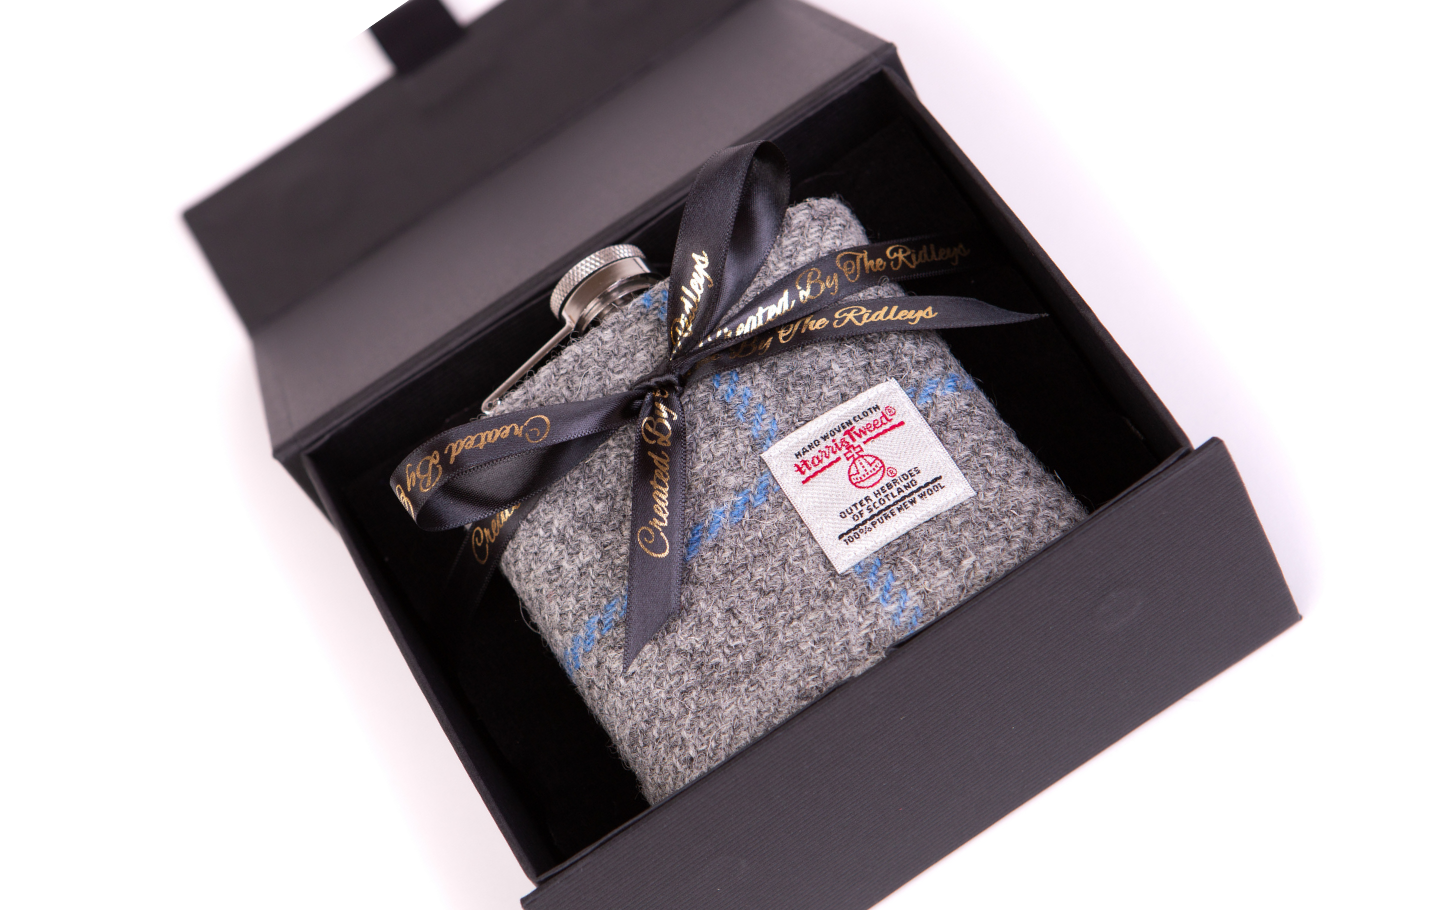 Luxury gifts under £25 from Kiltane